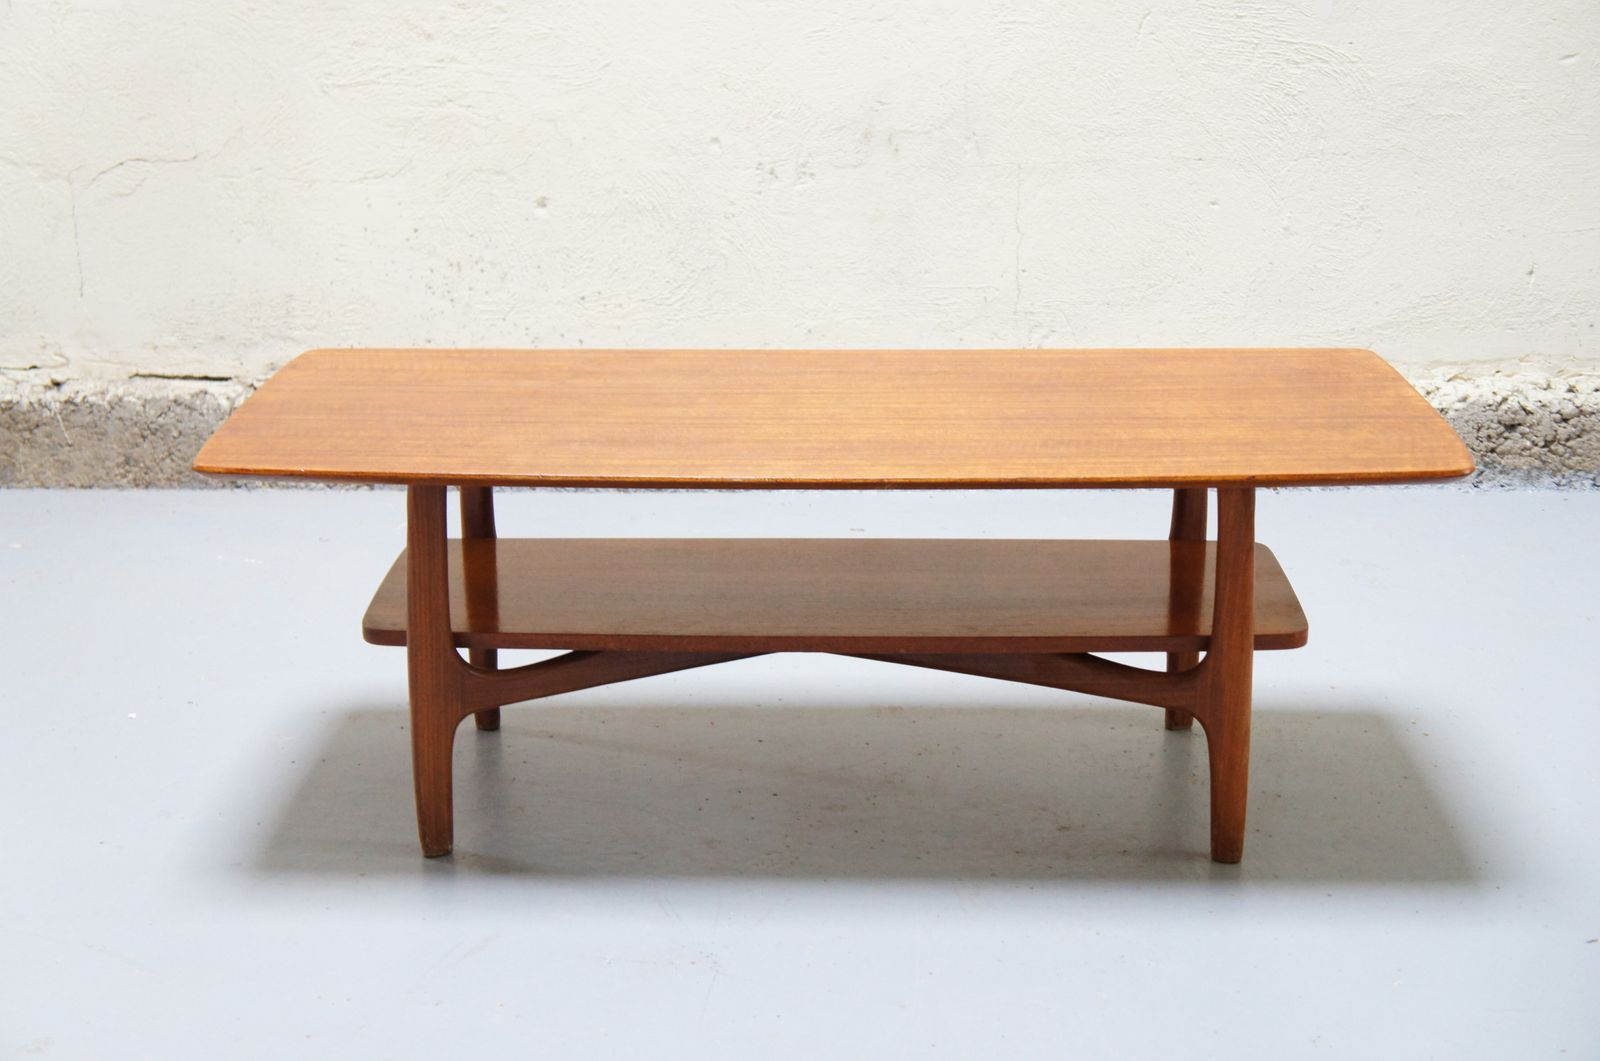 Vendu table basse scandinave vintage design danois teck - Table de salon style scandinave ...